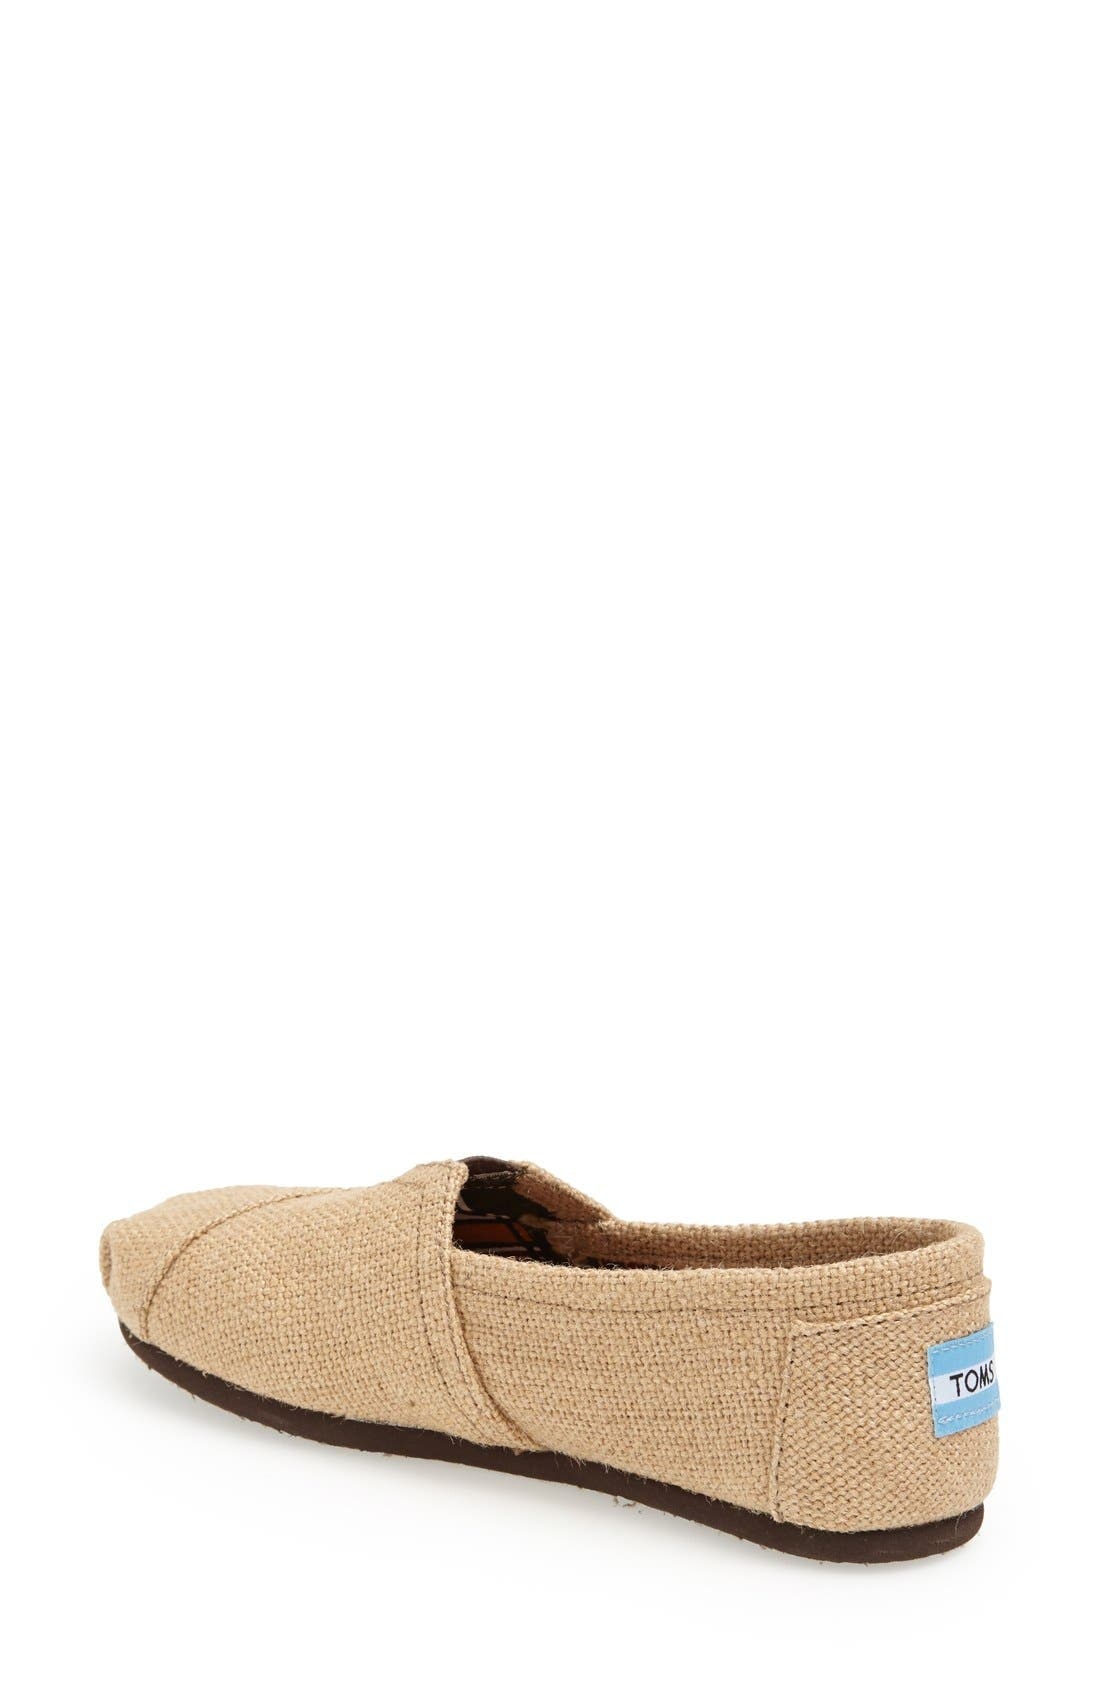 Alternate Image 2  - TOMS Burlap Slip-On (Women)